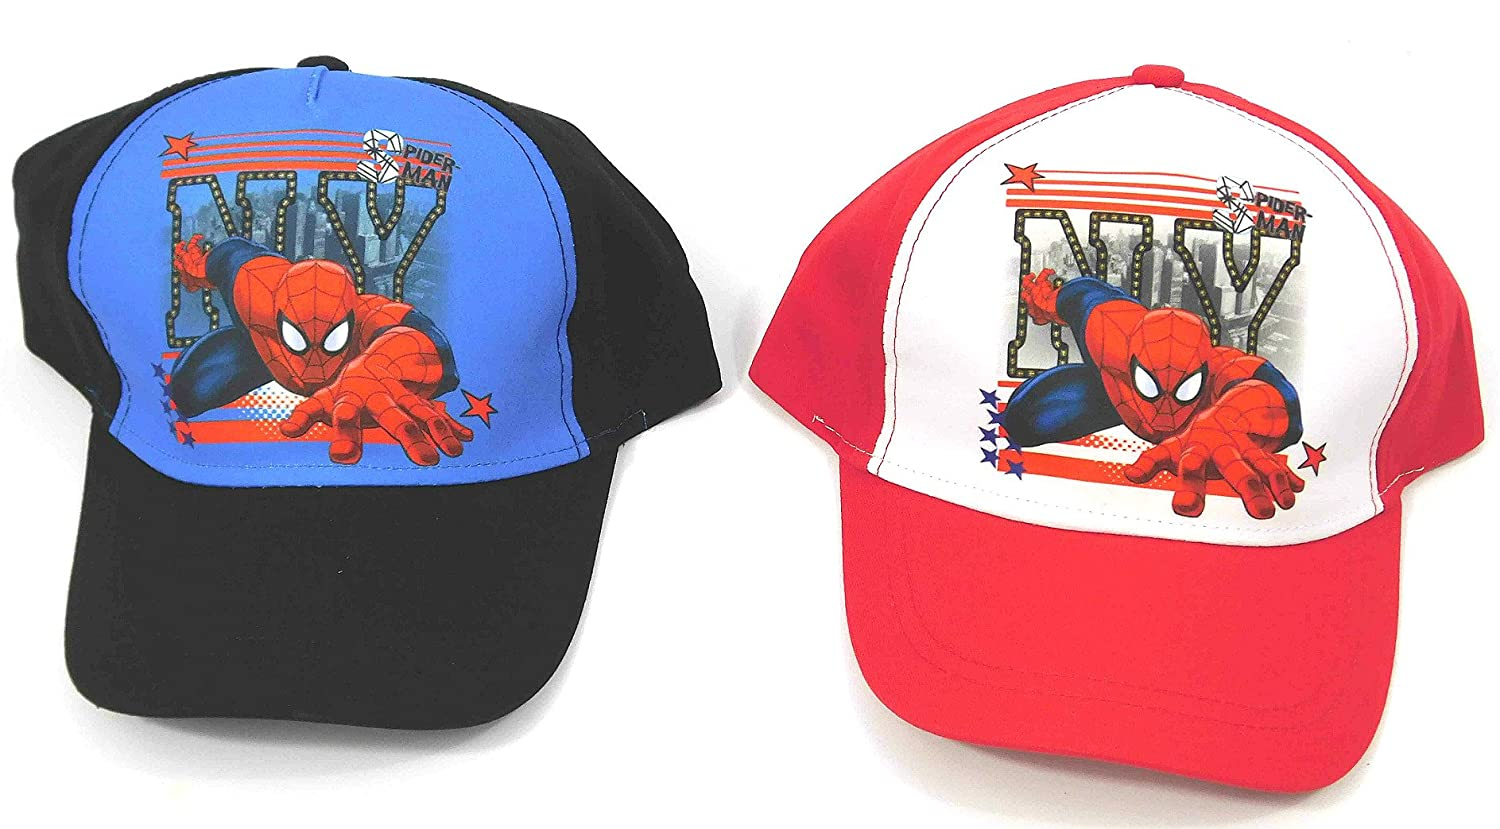 dba5f097fd232f Marvel Childrens Kids Baseball Cap Hat - Spiderman - Snapback:  Amazon.co.uk: Clothing